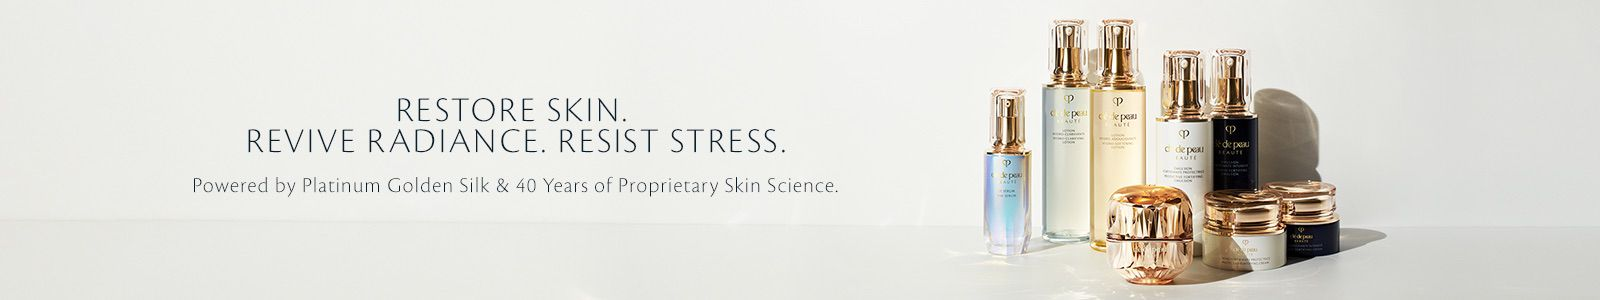 Restore Skin,, Revive Radiance, Resist Stress